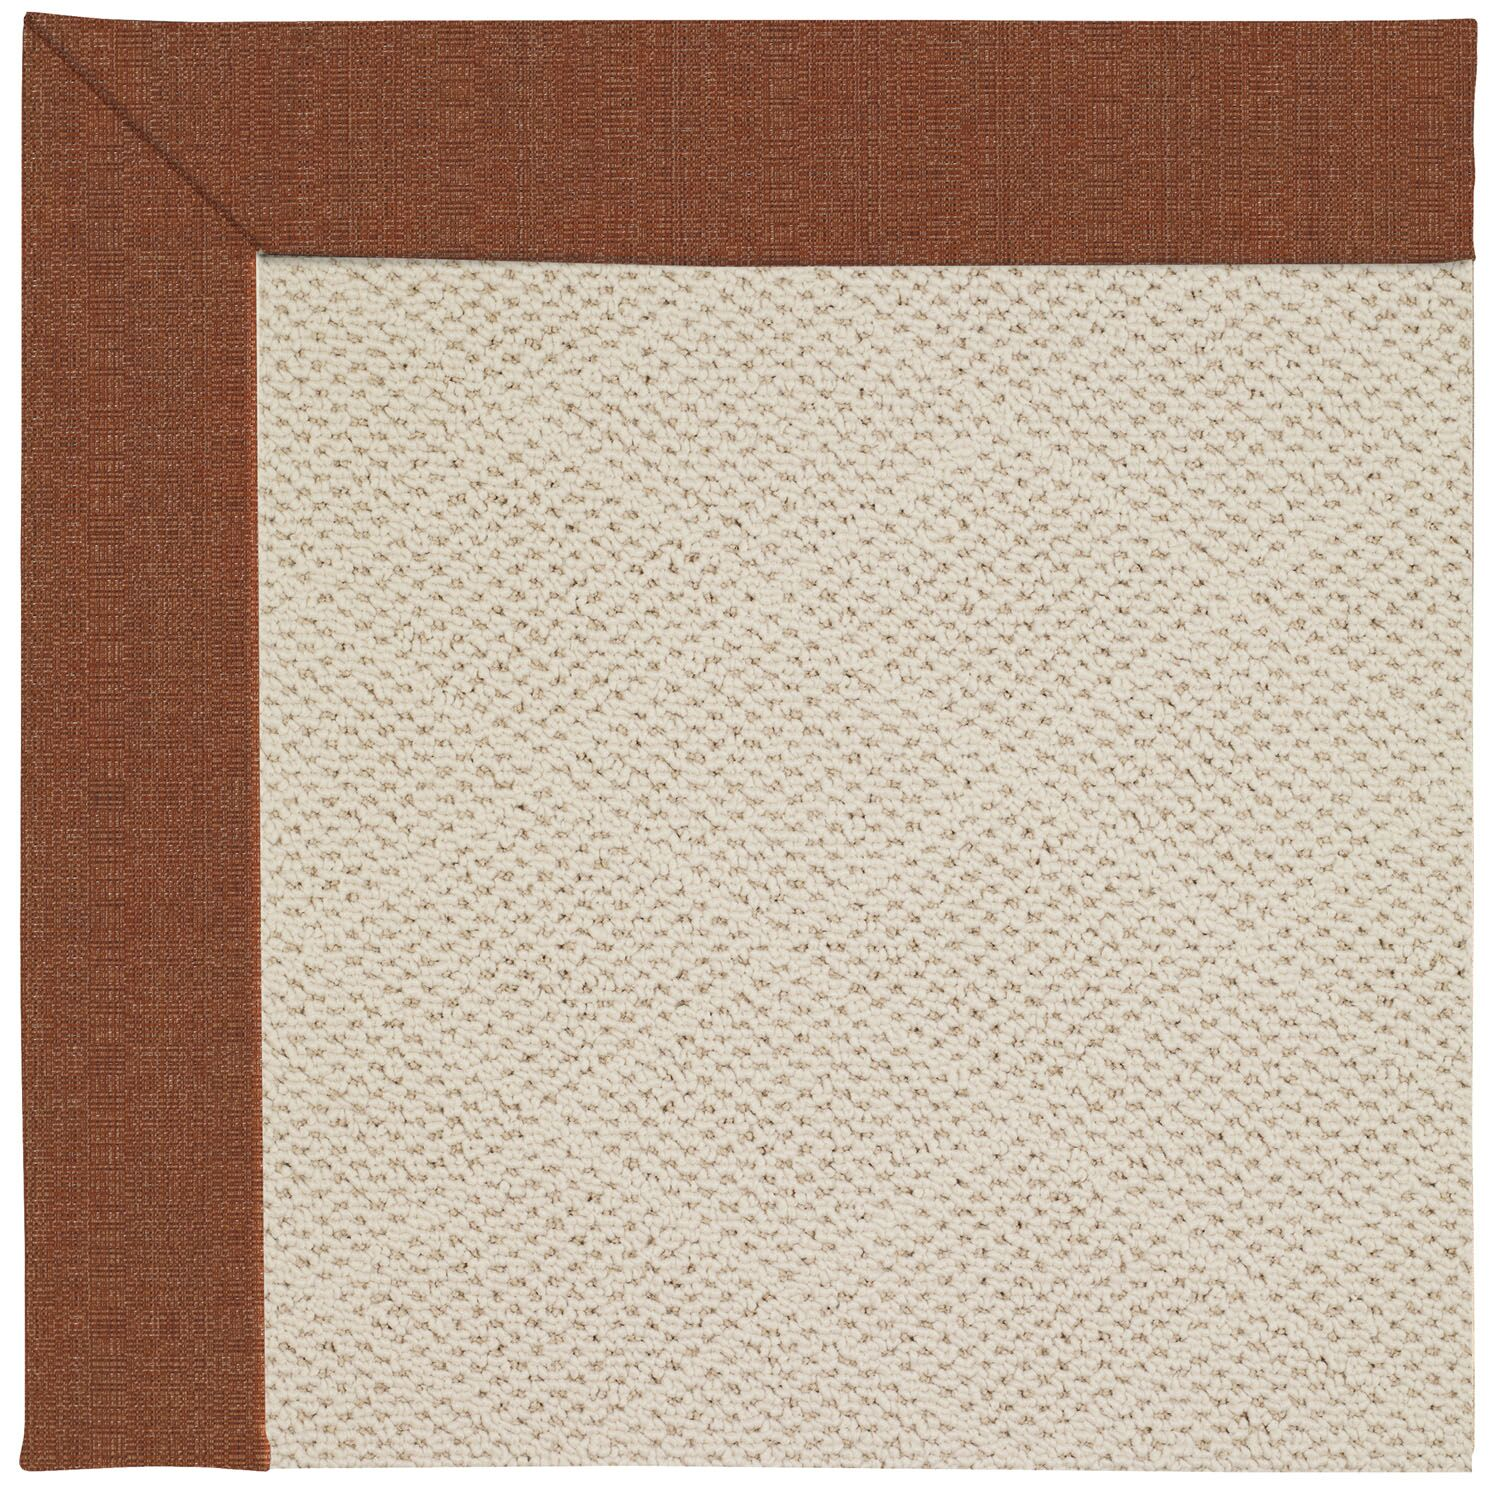 Lisle Dried Chilis Indoor/Outdoor Area Rug Rug Size: Rectangle 12' x 15'